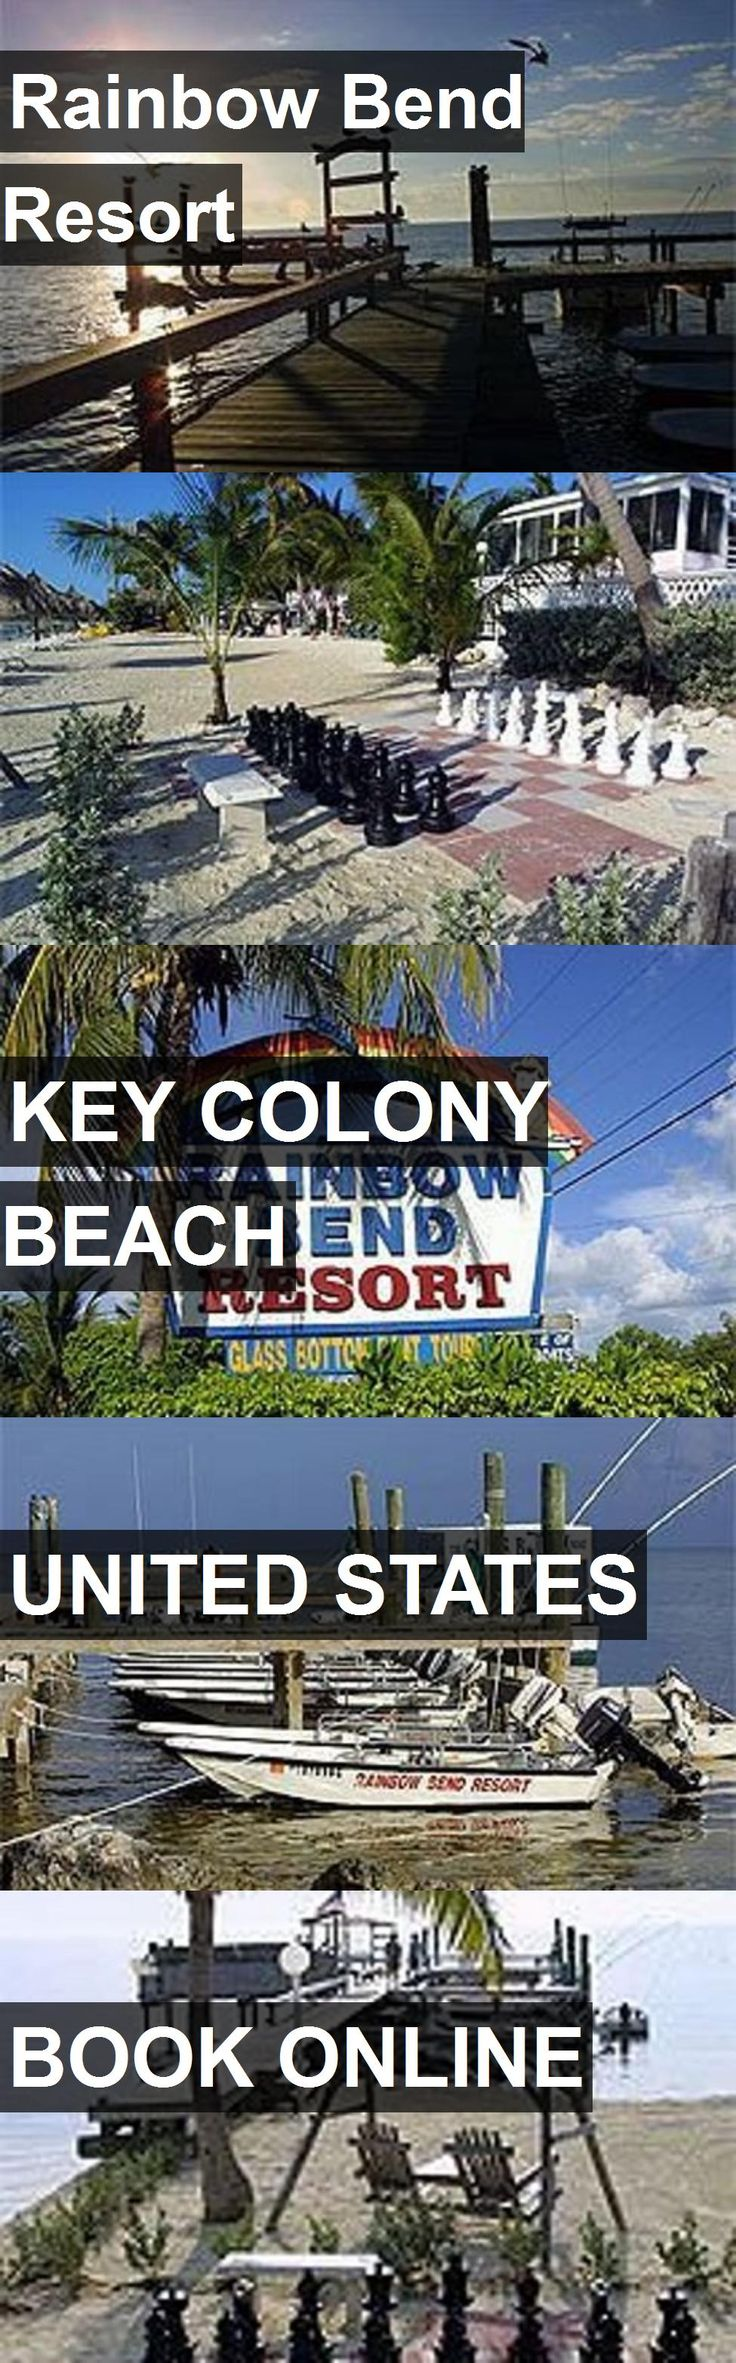 Hotel Rainbow Bend Resort in Key Colony Beach, United States. For more information, photos, reviews and best prices please follow the link. #UnitedStates #KeyColonyBeach #travel #vacation #hotel